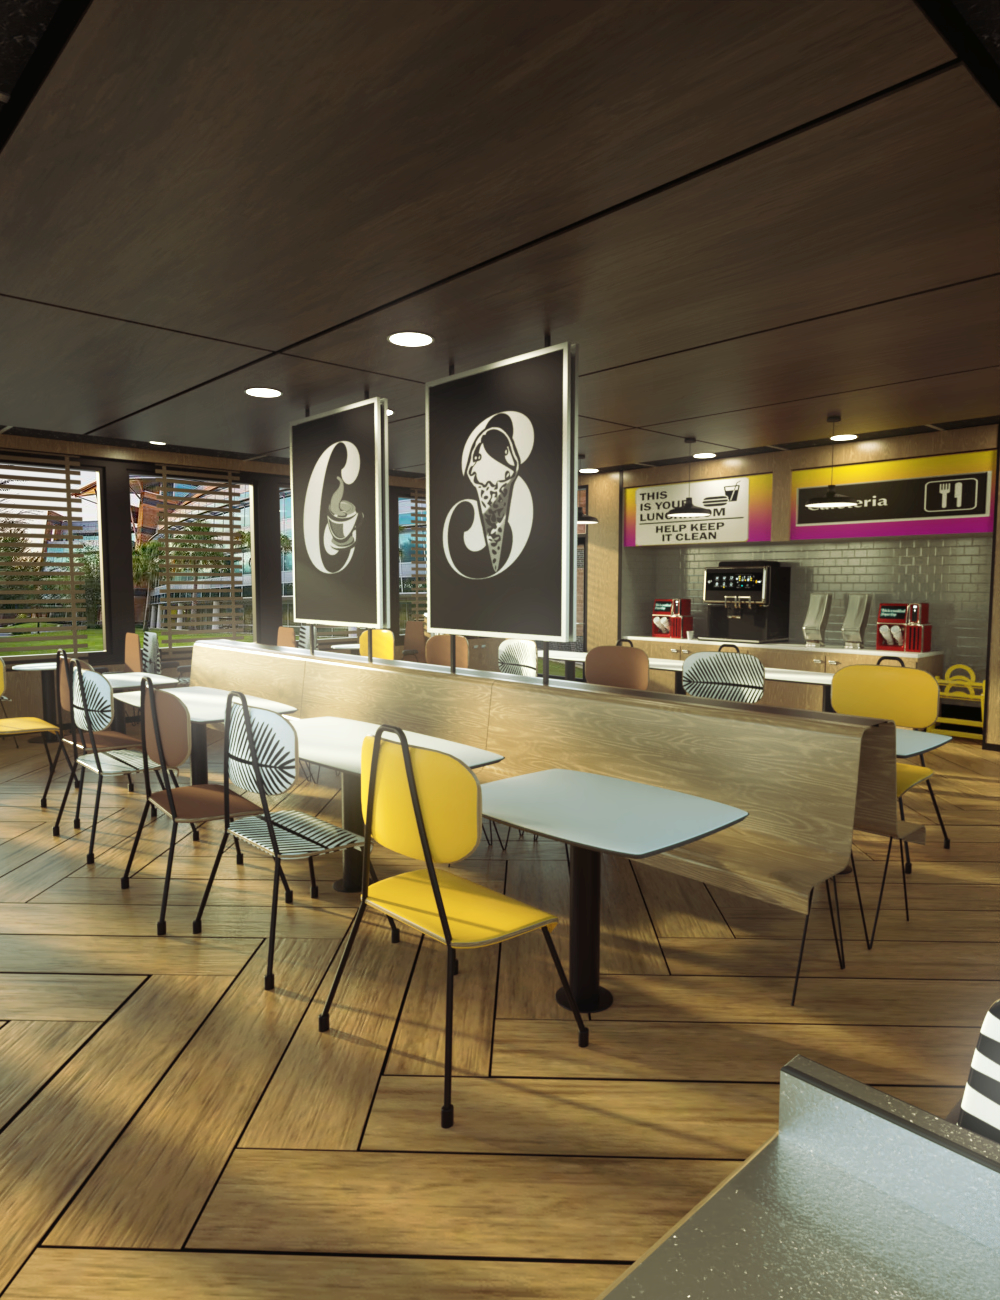 Office Cafeteria by: Digitallab3D, 3D Models by Daz 3D